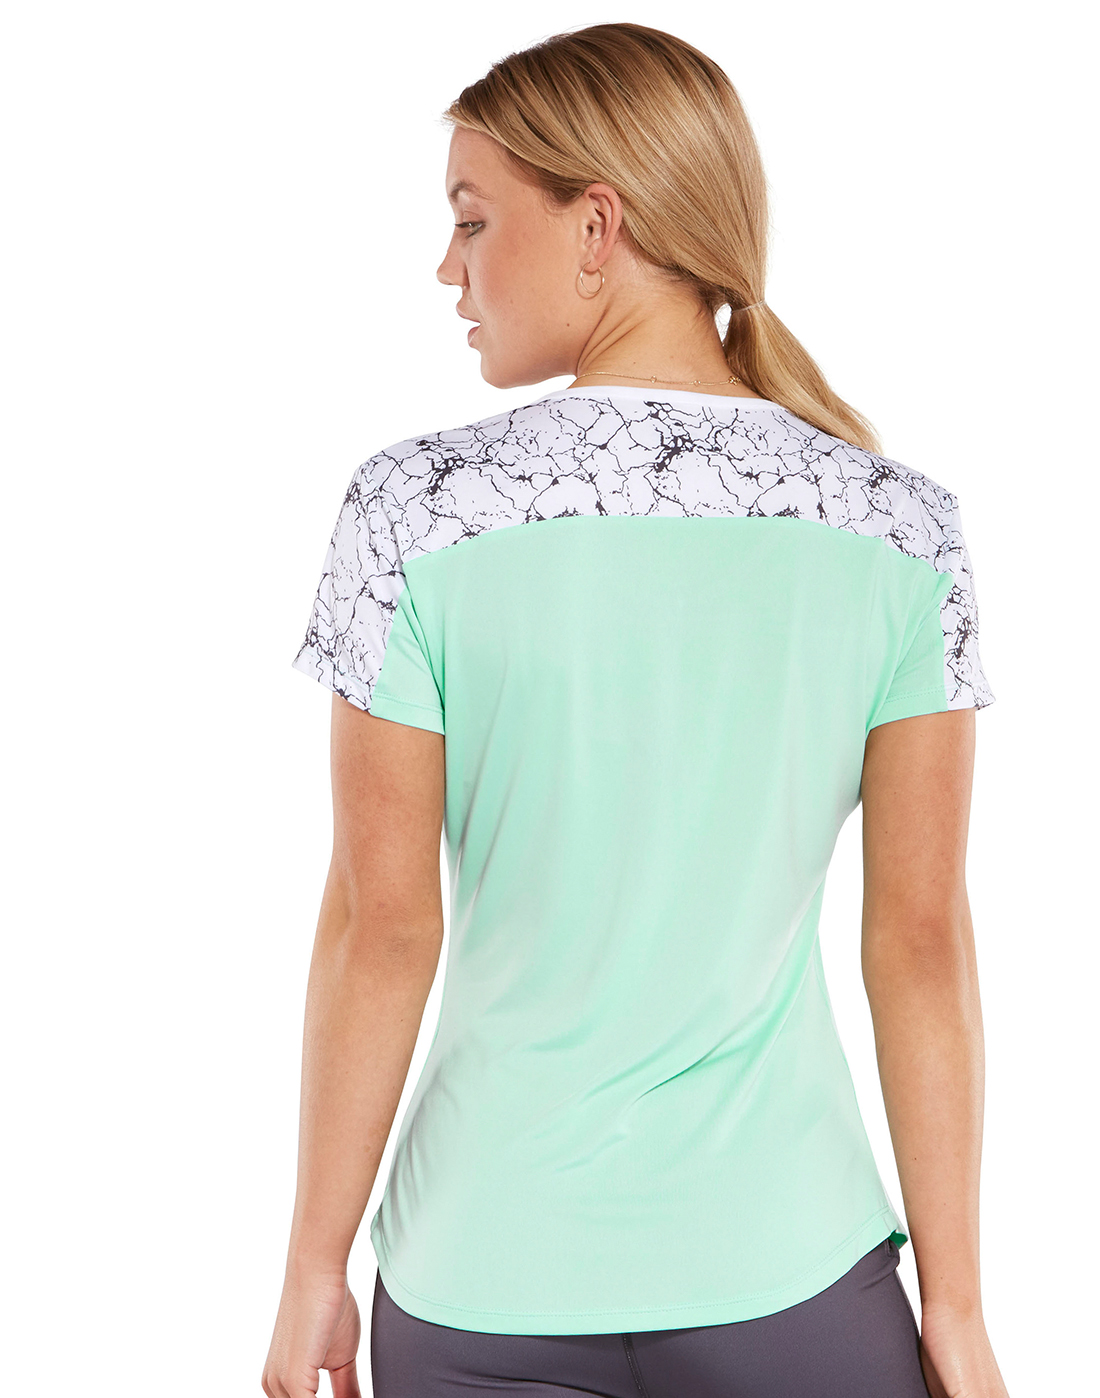 3ffc3611e Mint Green Millie & Gym T-Shirt | Life Style Sports